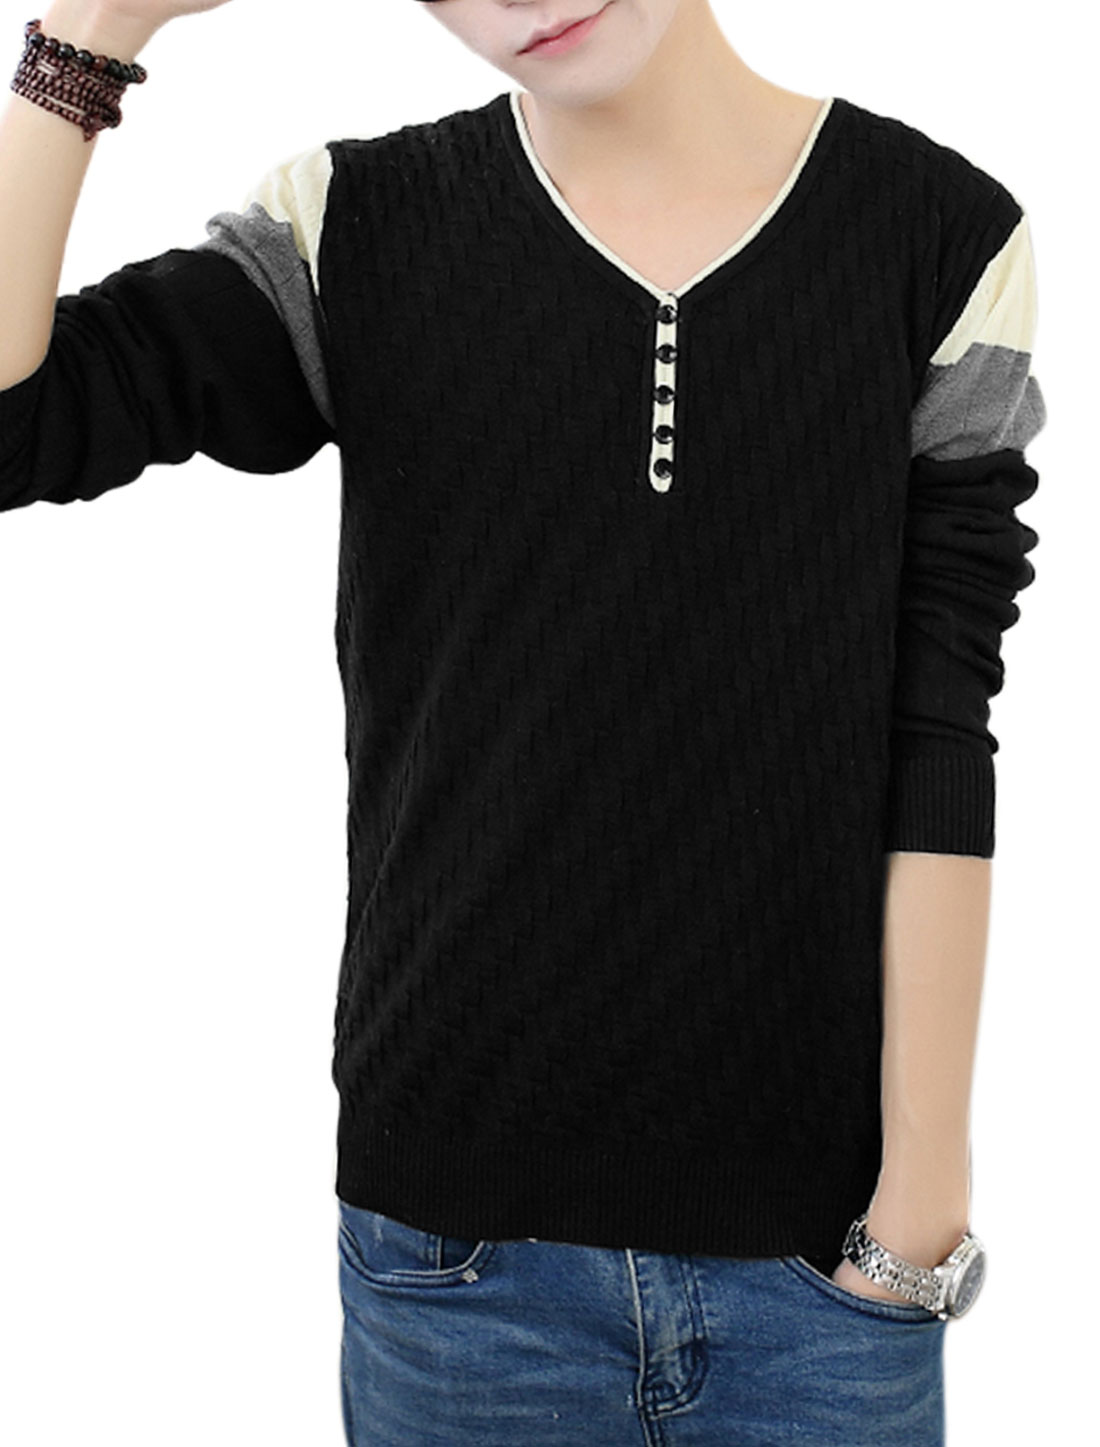 Men Black Pullover Weaven Pattern V Neck Ribbed Trim Casual Knit Shirt S